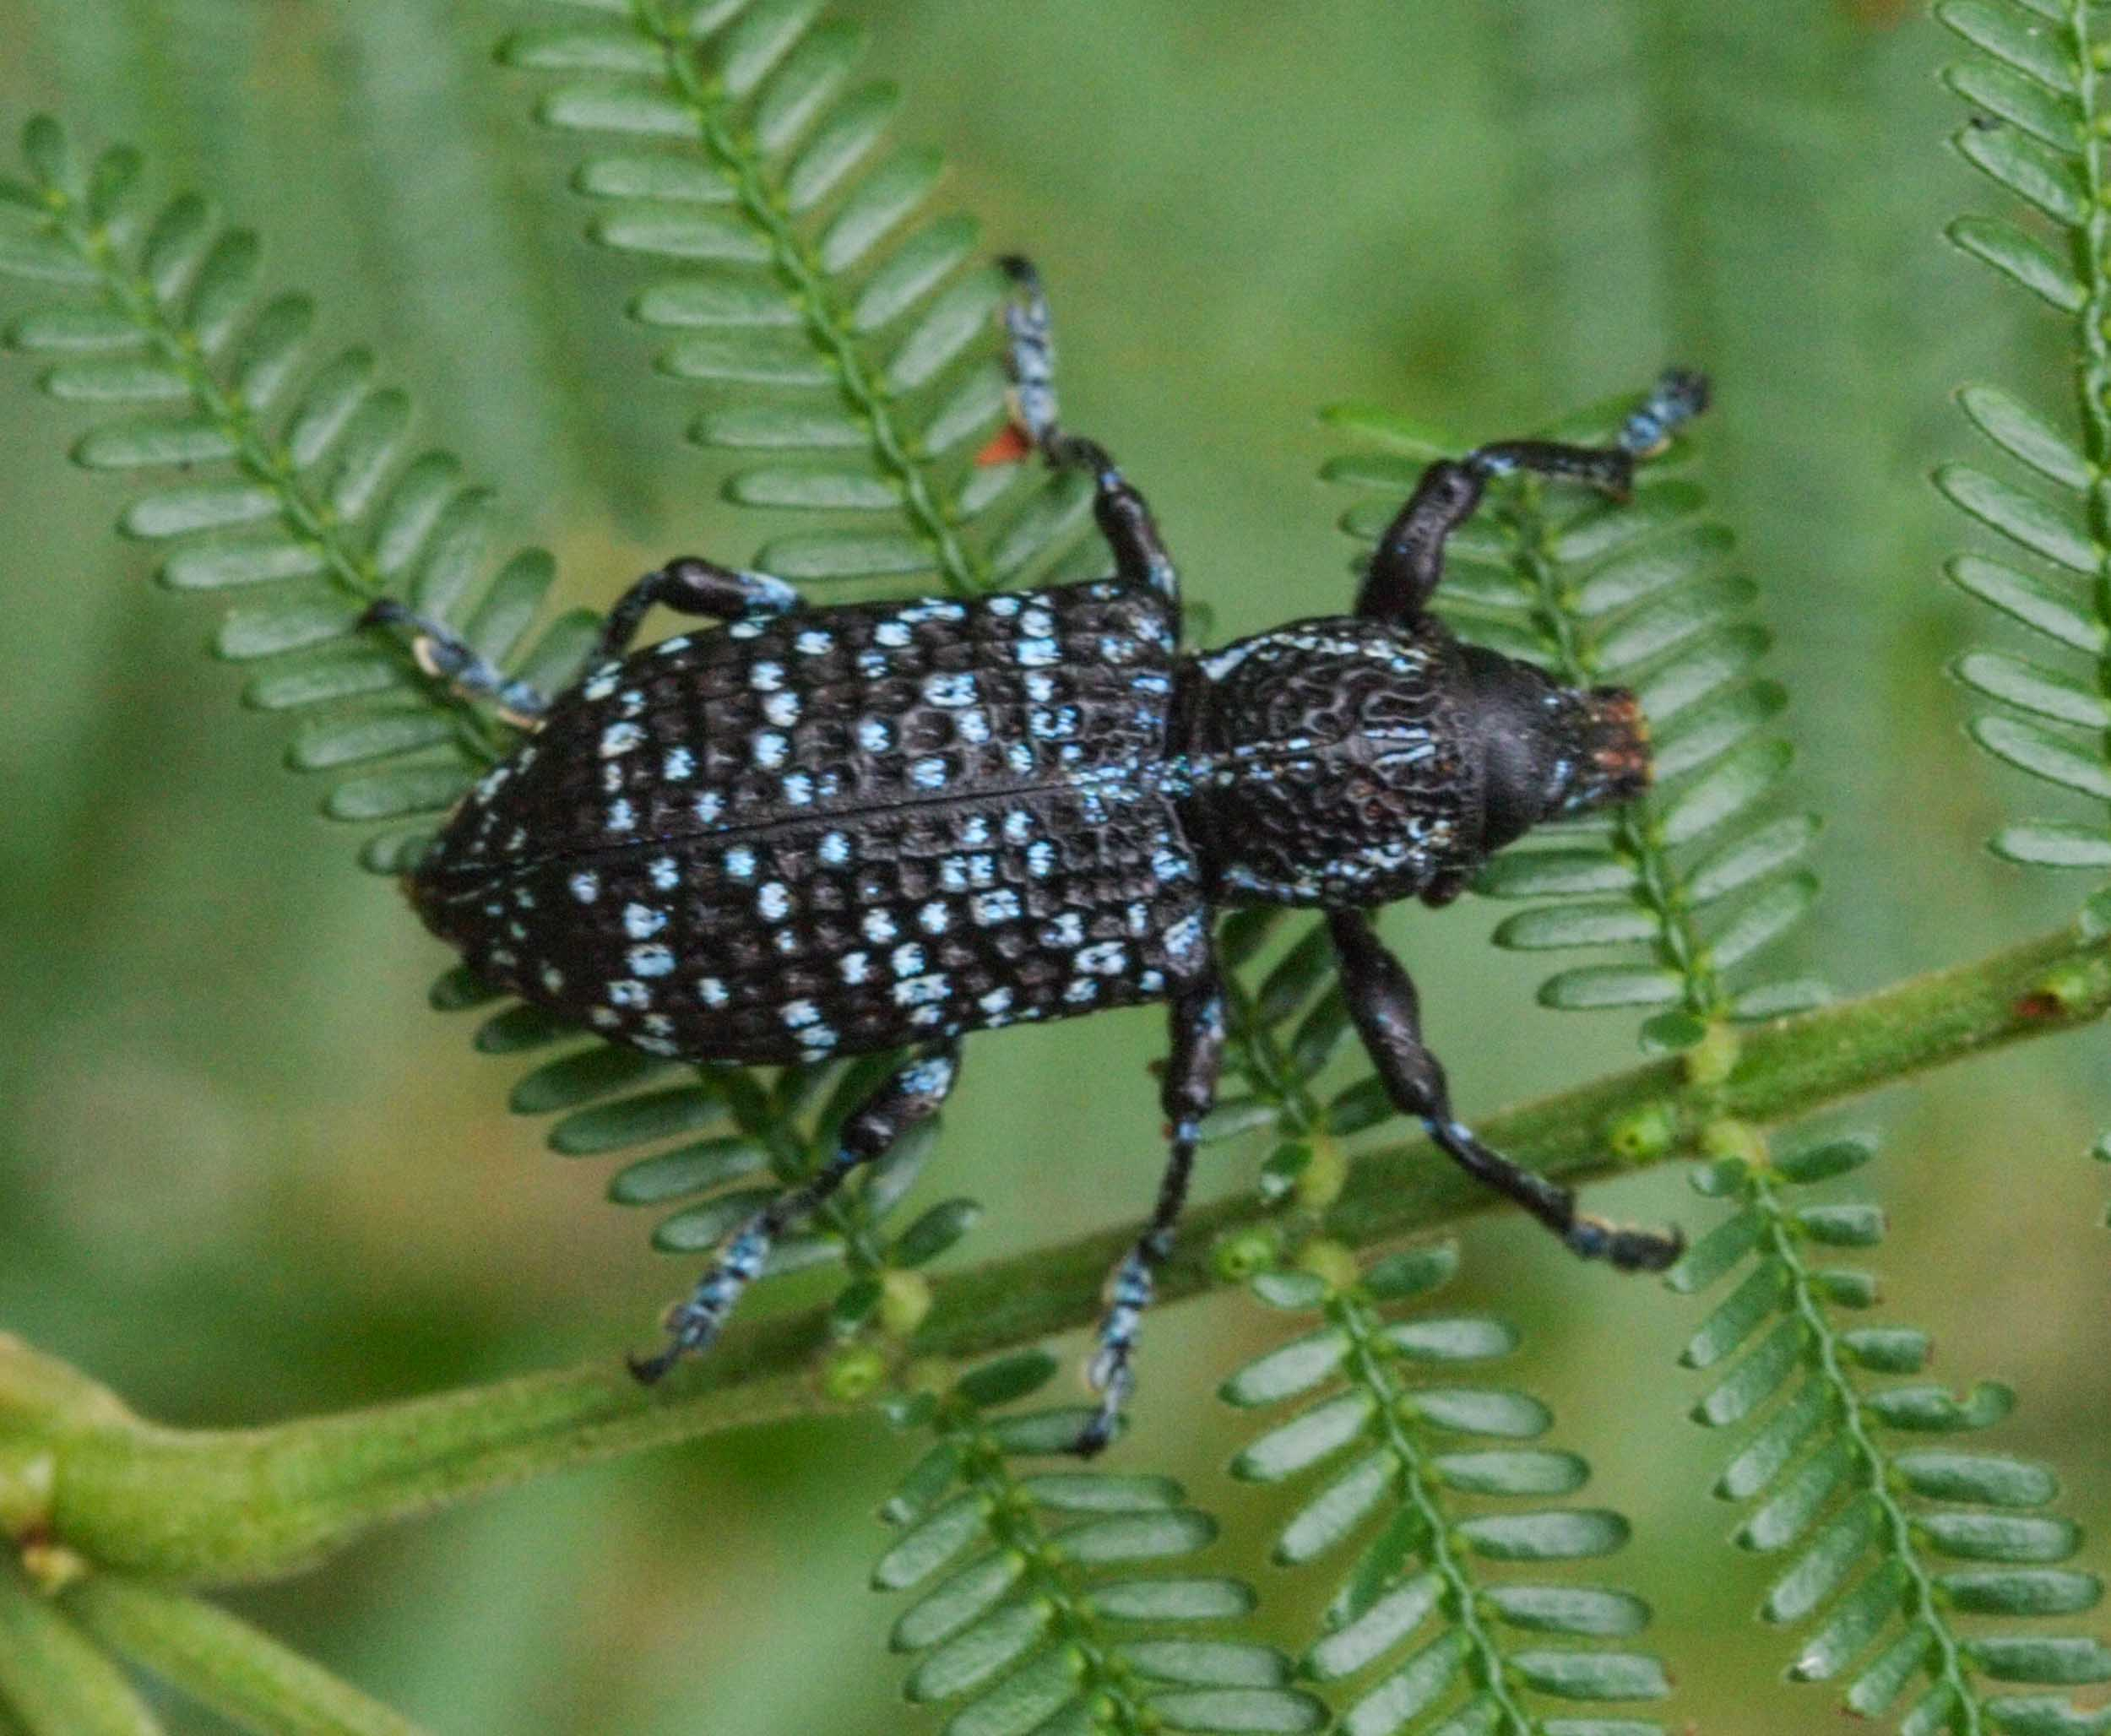 The leaves of A. terminalis are eaten by this insect, the Botany Bay Diamond Weevil,  Chrysolopus spectabilis .